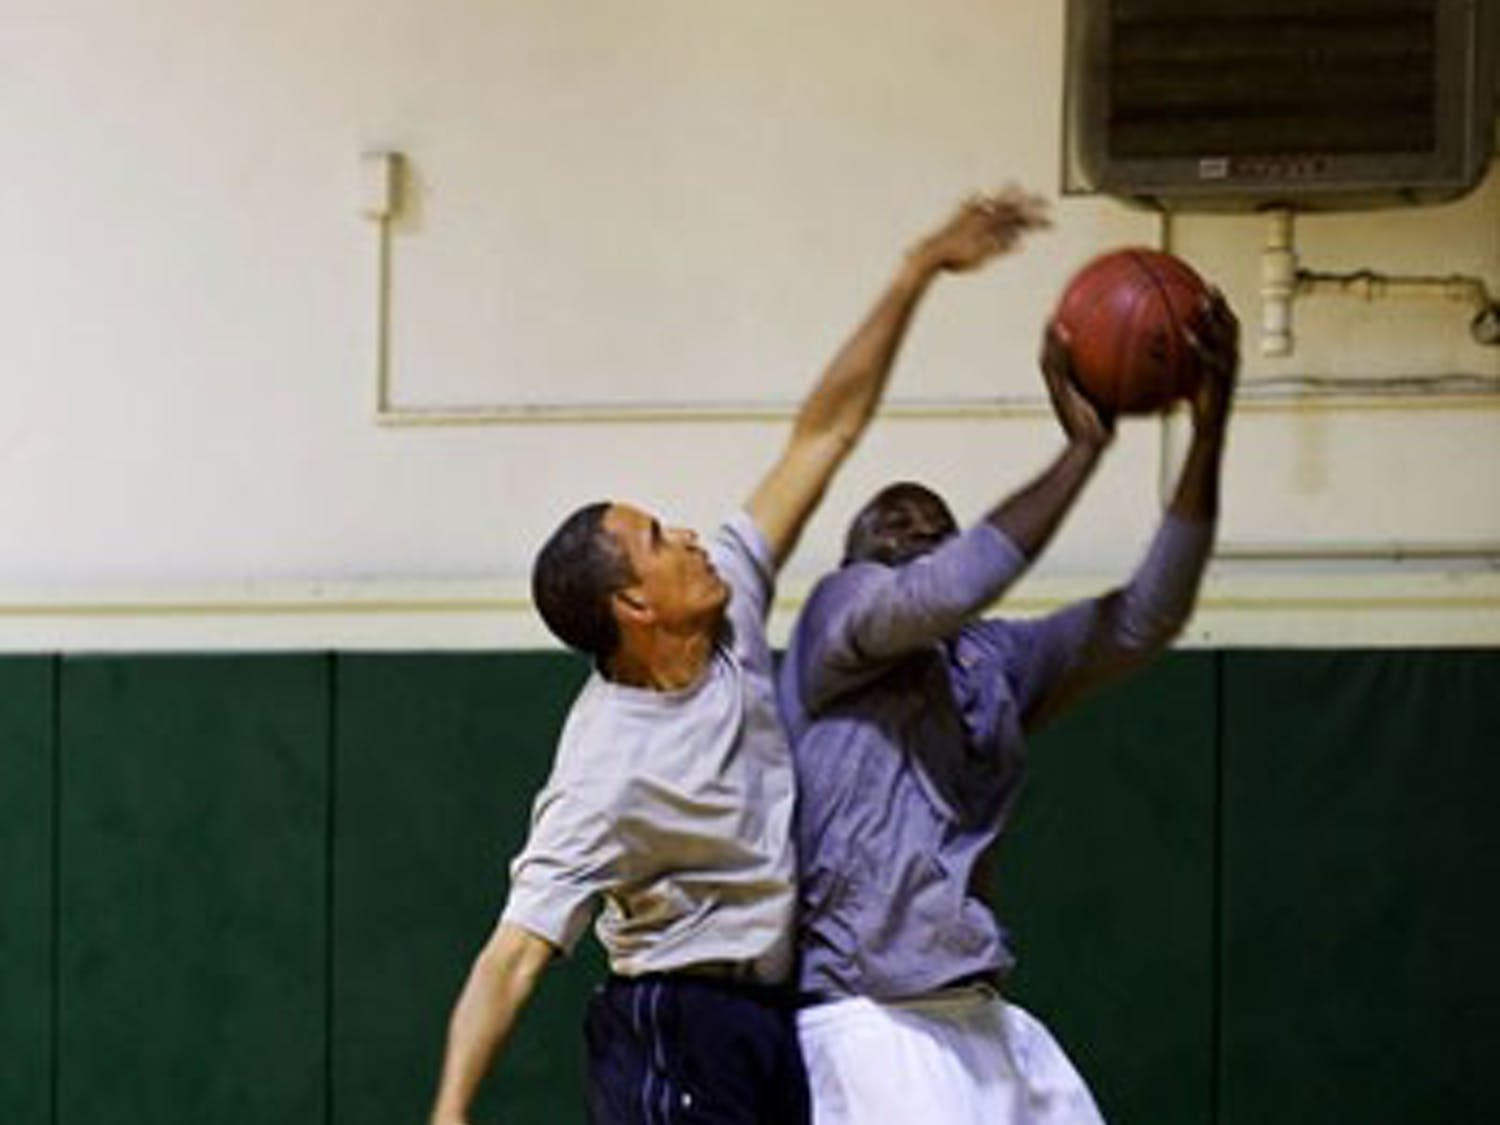 President Barack Obama plays basketball with personal aide Reggie Love at St. Bartholomew (St. Bart's) Church in New York, N.Y. on Sept. 23, 2009.   